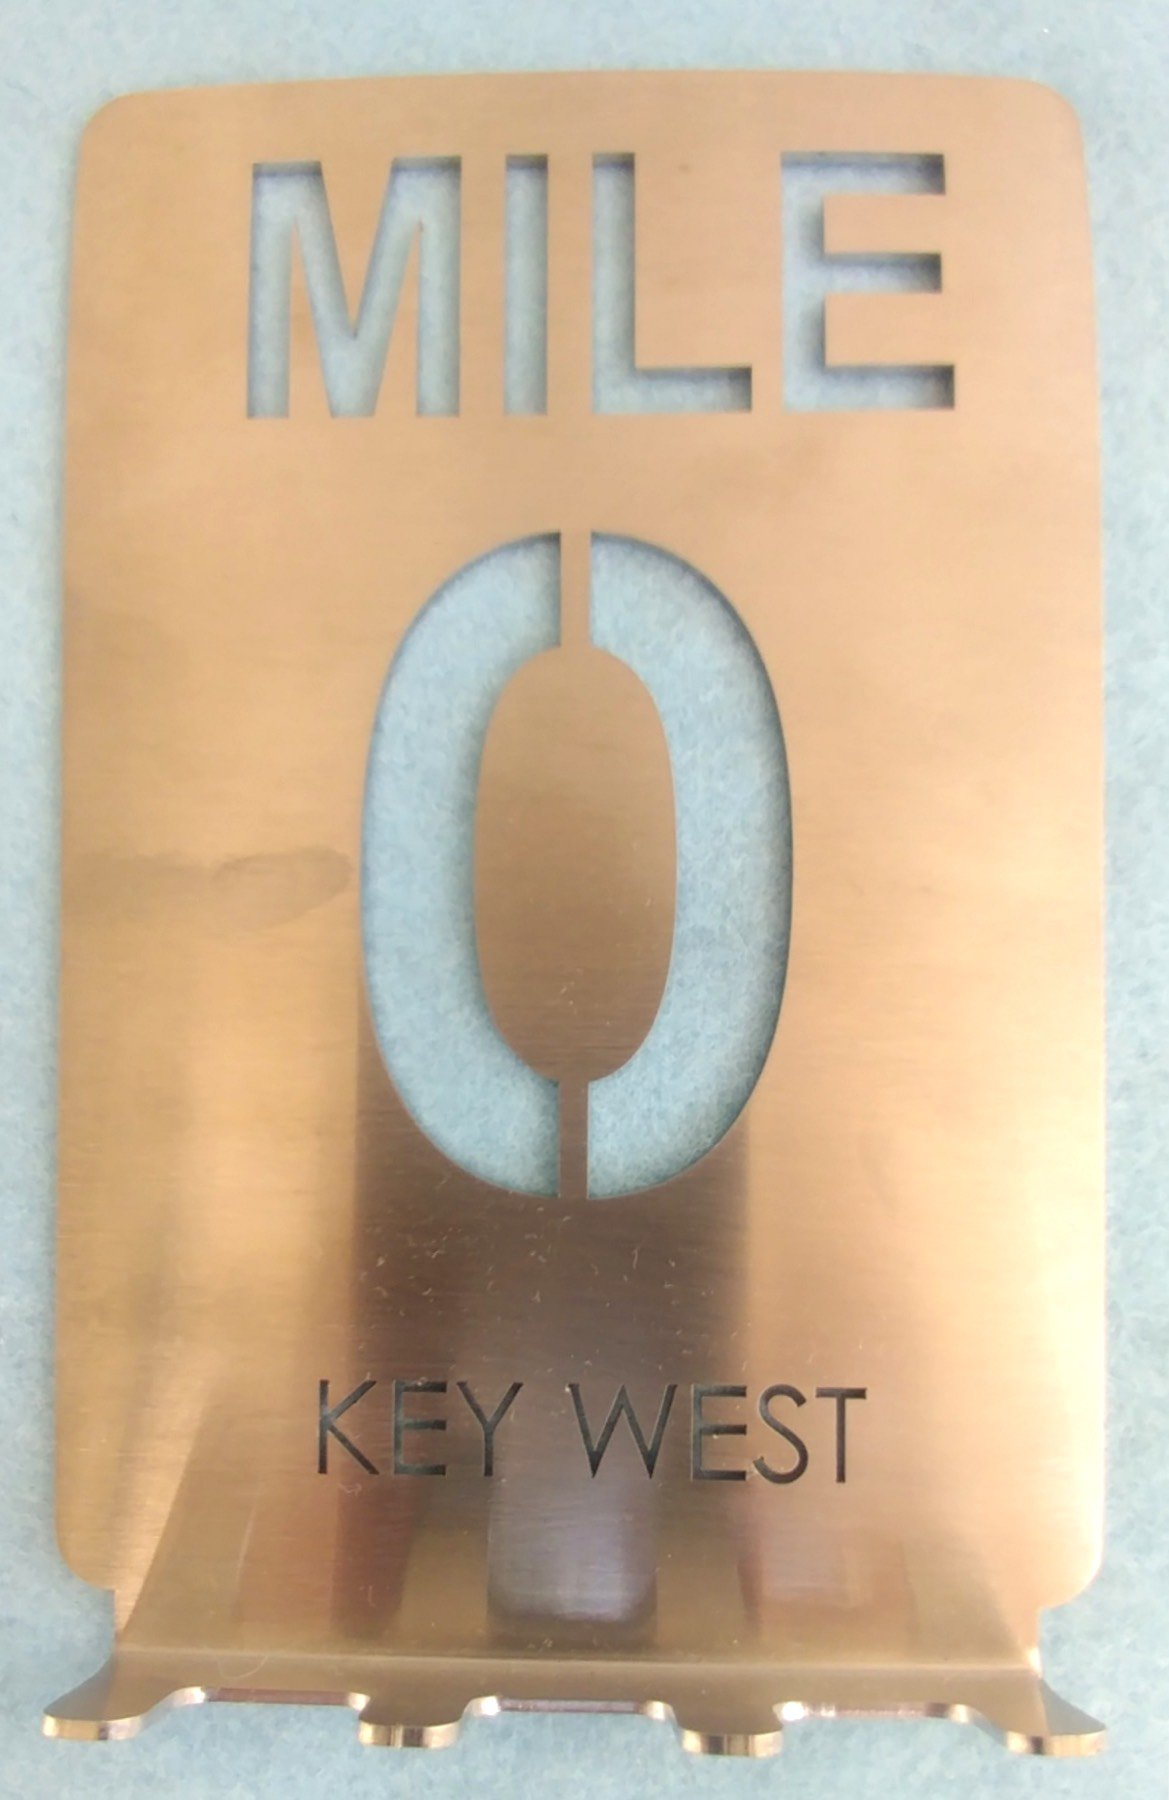 Unique Stainless Steel Key Rack holds spare keys, fobs, remotes: MILE 0 sign